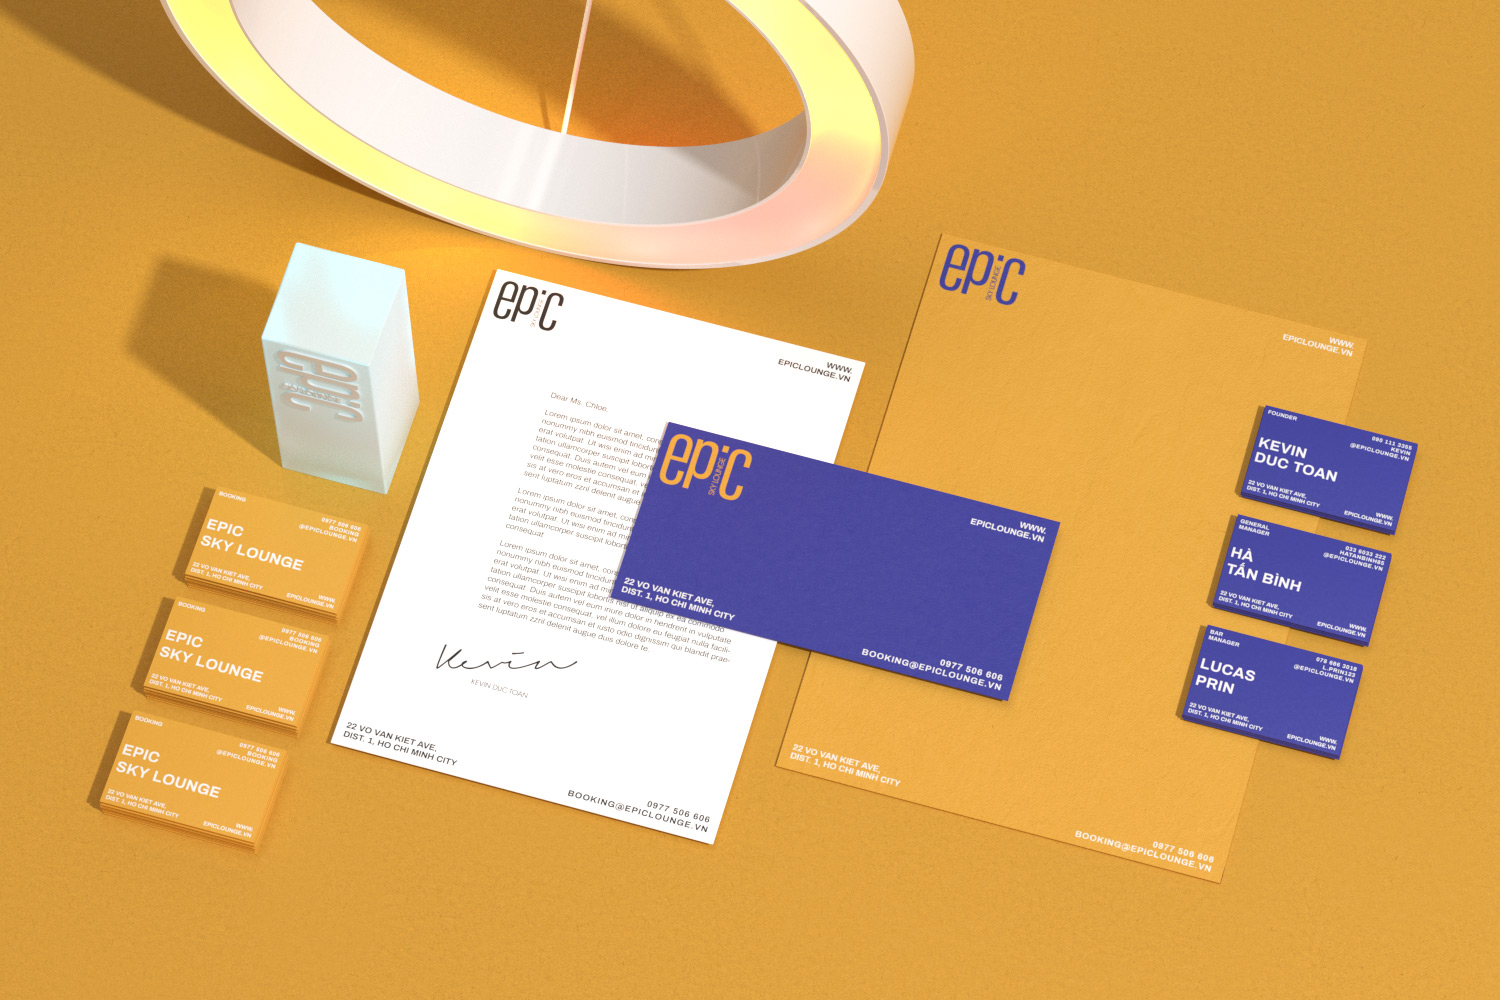 Epic Sky Lounge stationery set on yellow background